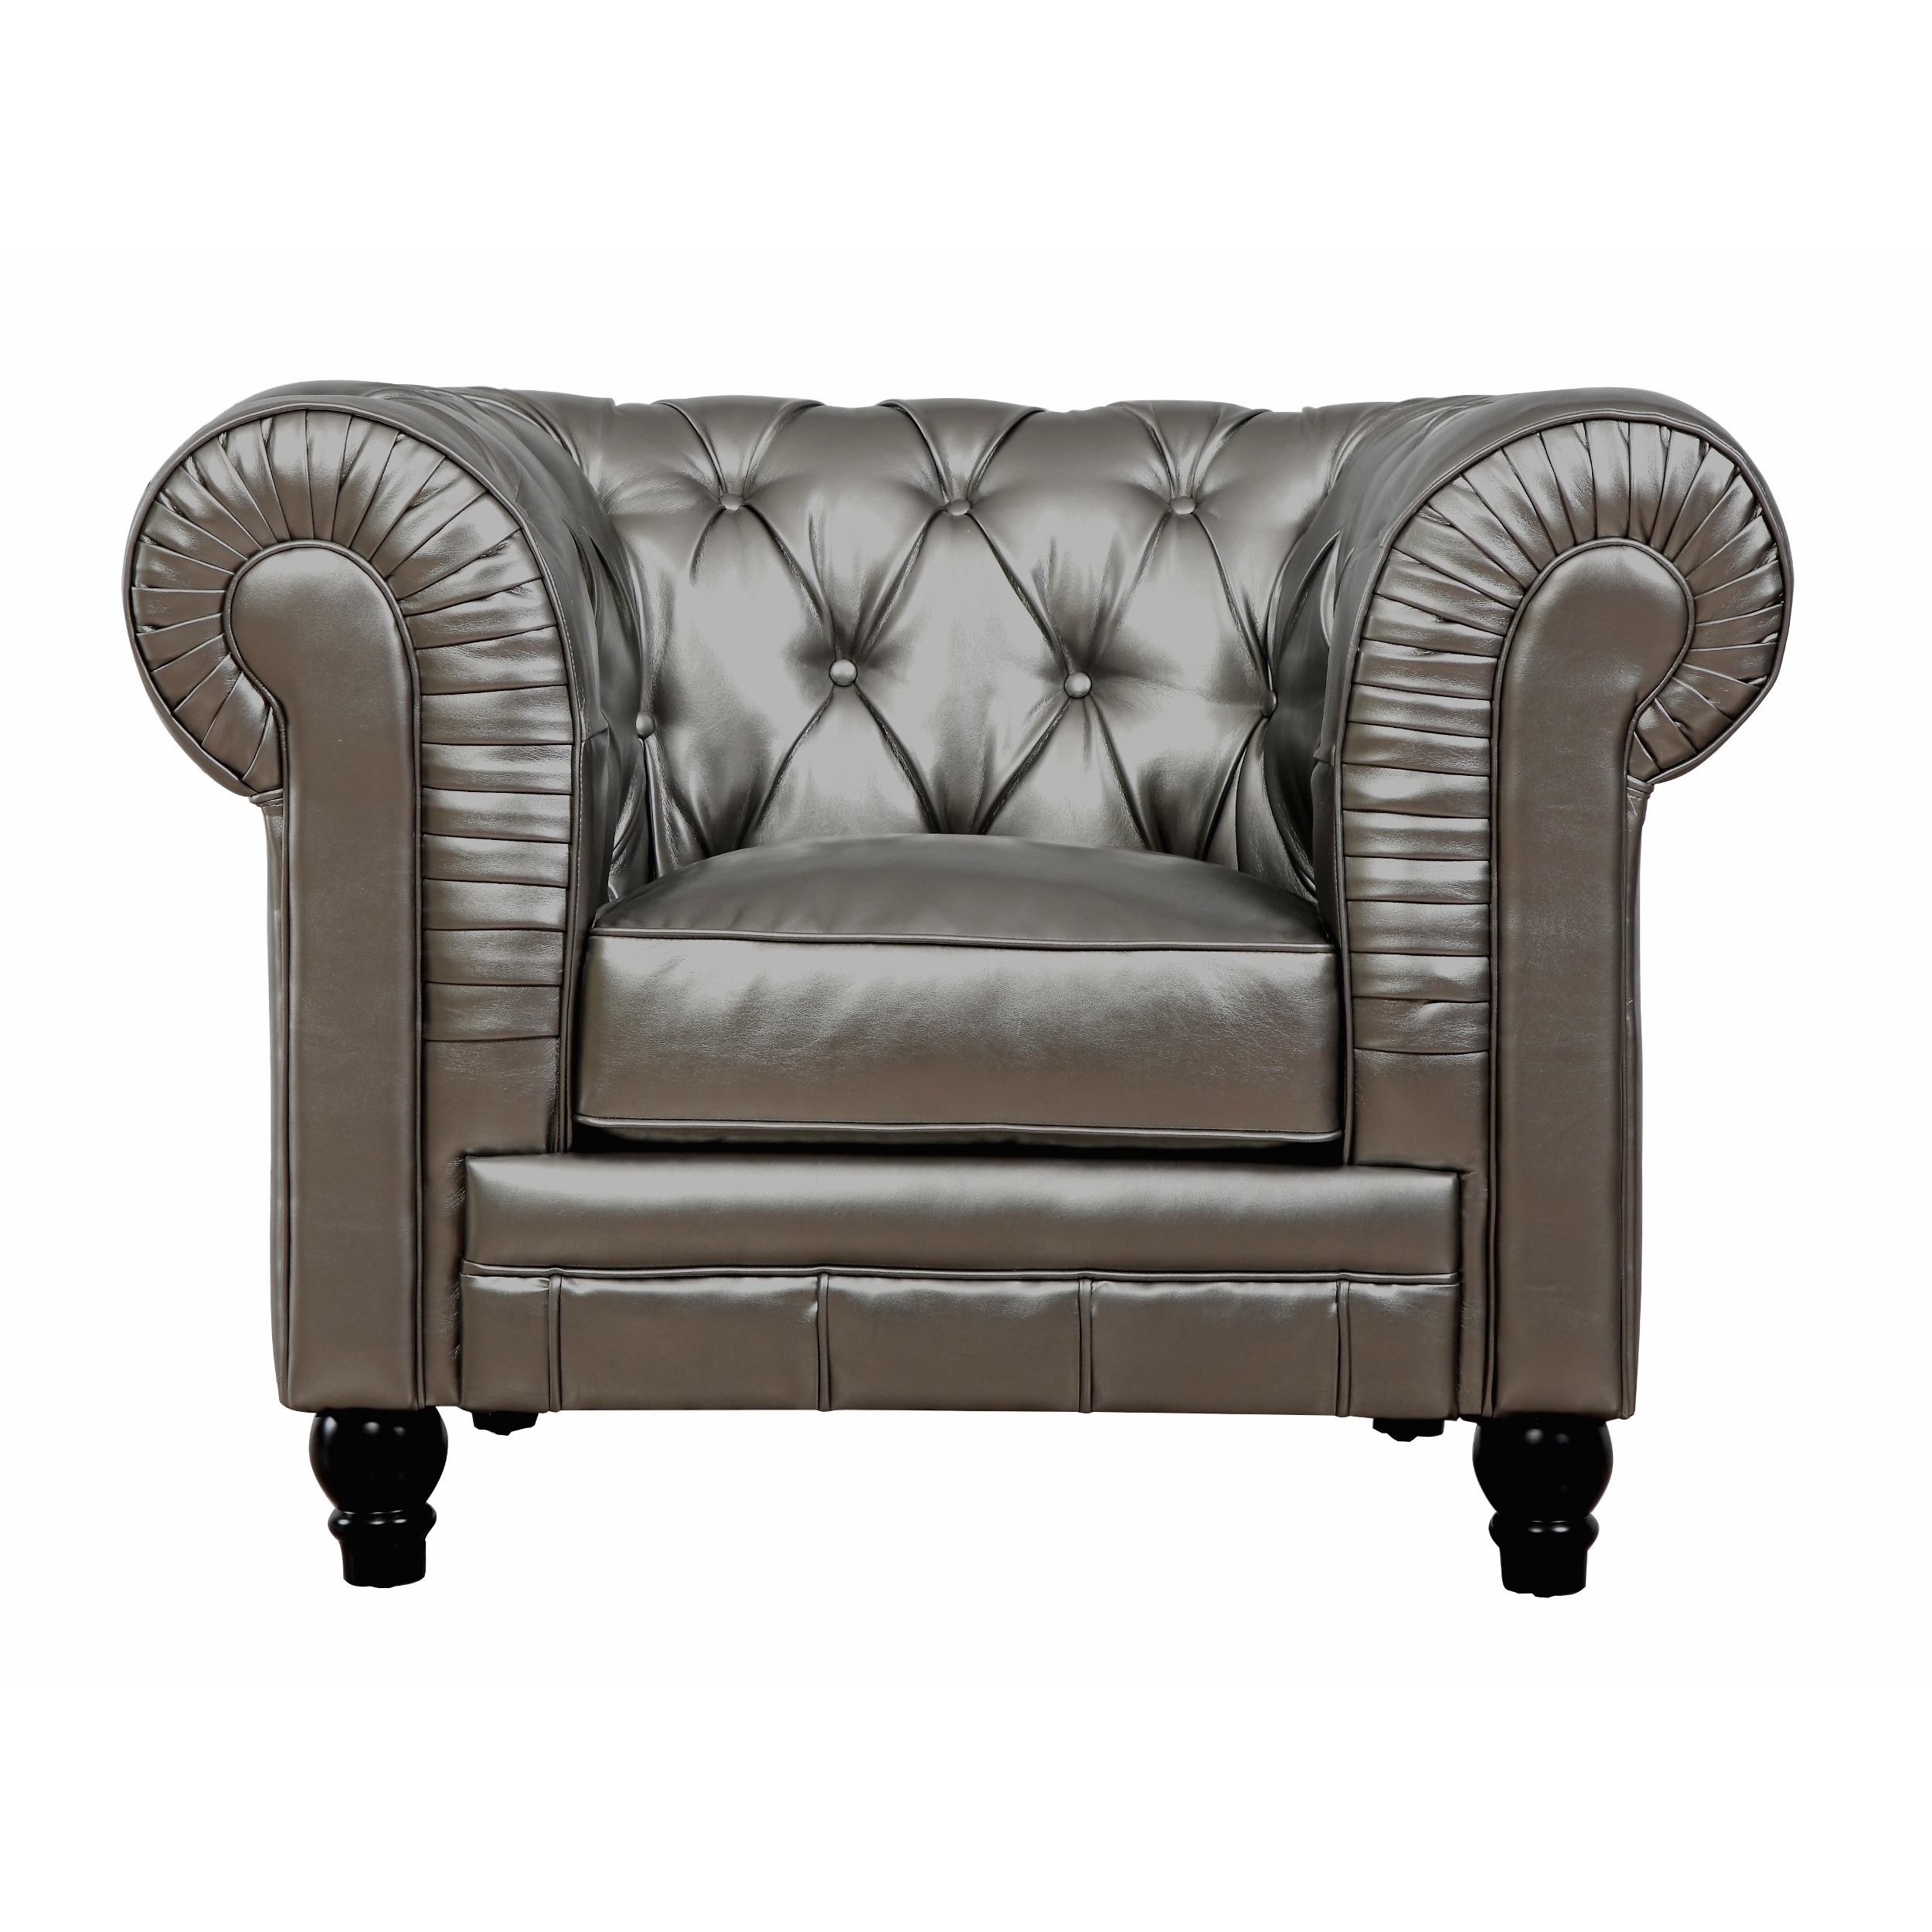 Zahara Silver Leather Club Chair   Free Shipping Today   Overstock    16272893